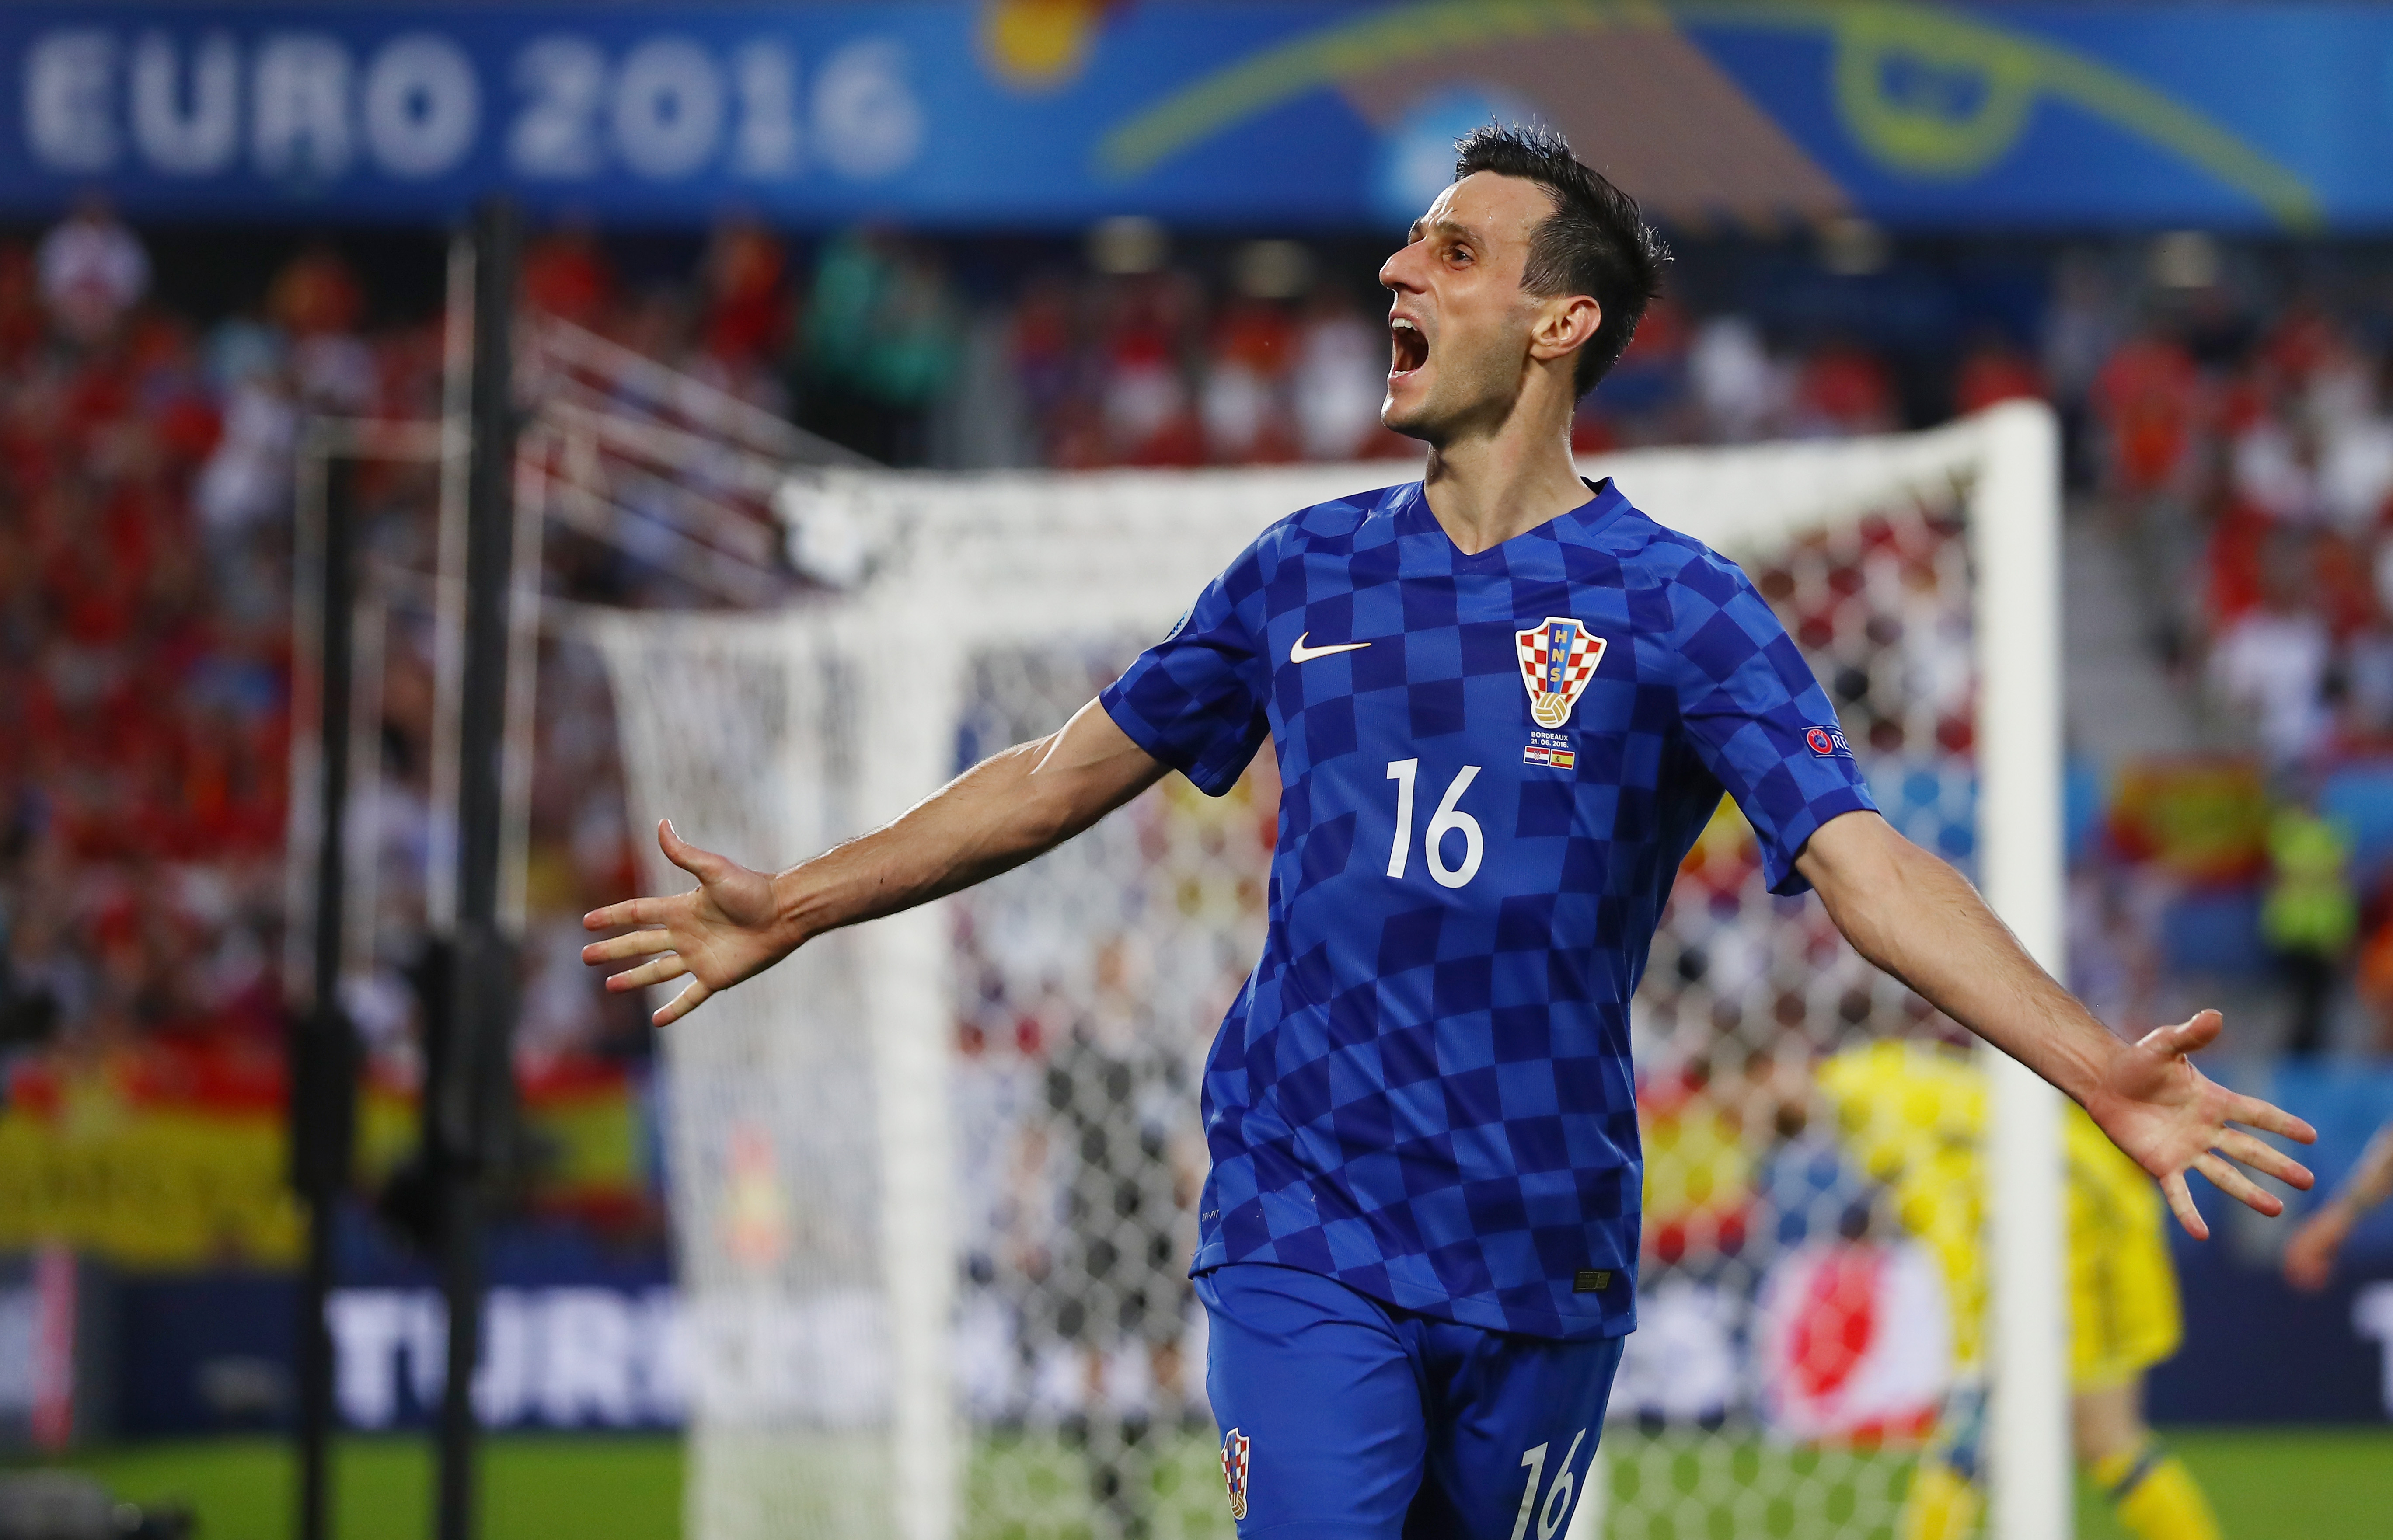 Croatia Coach Explains Nikola Kalinic's Sending Home from World Cup